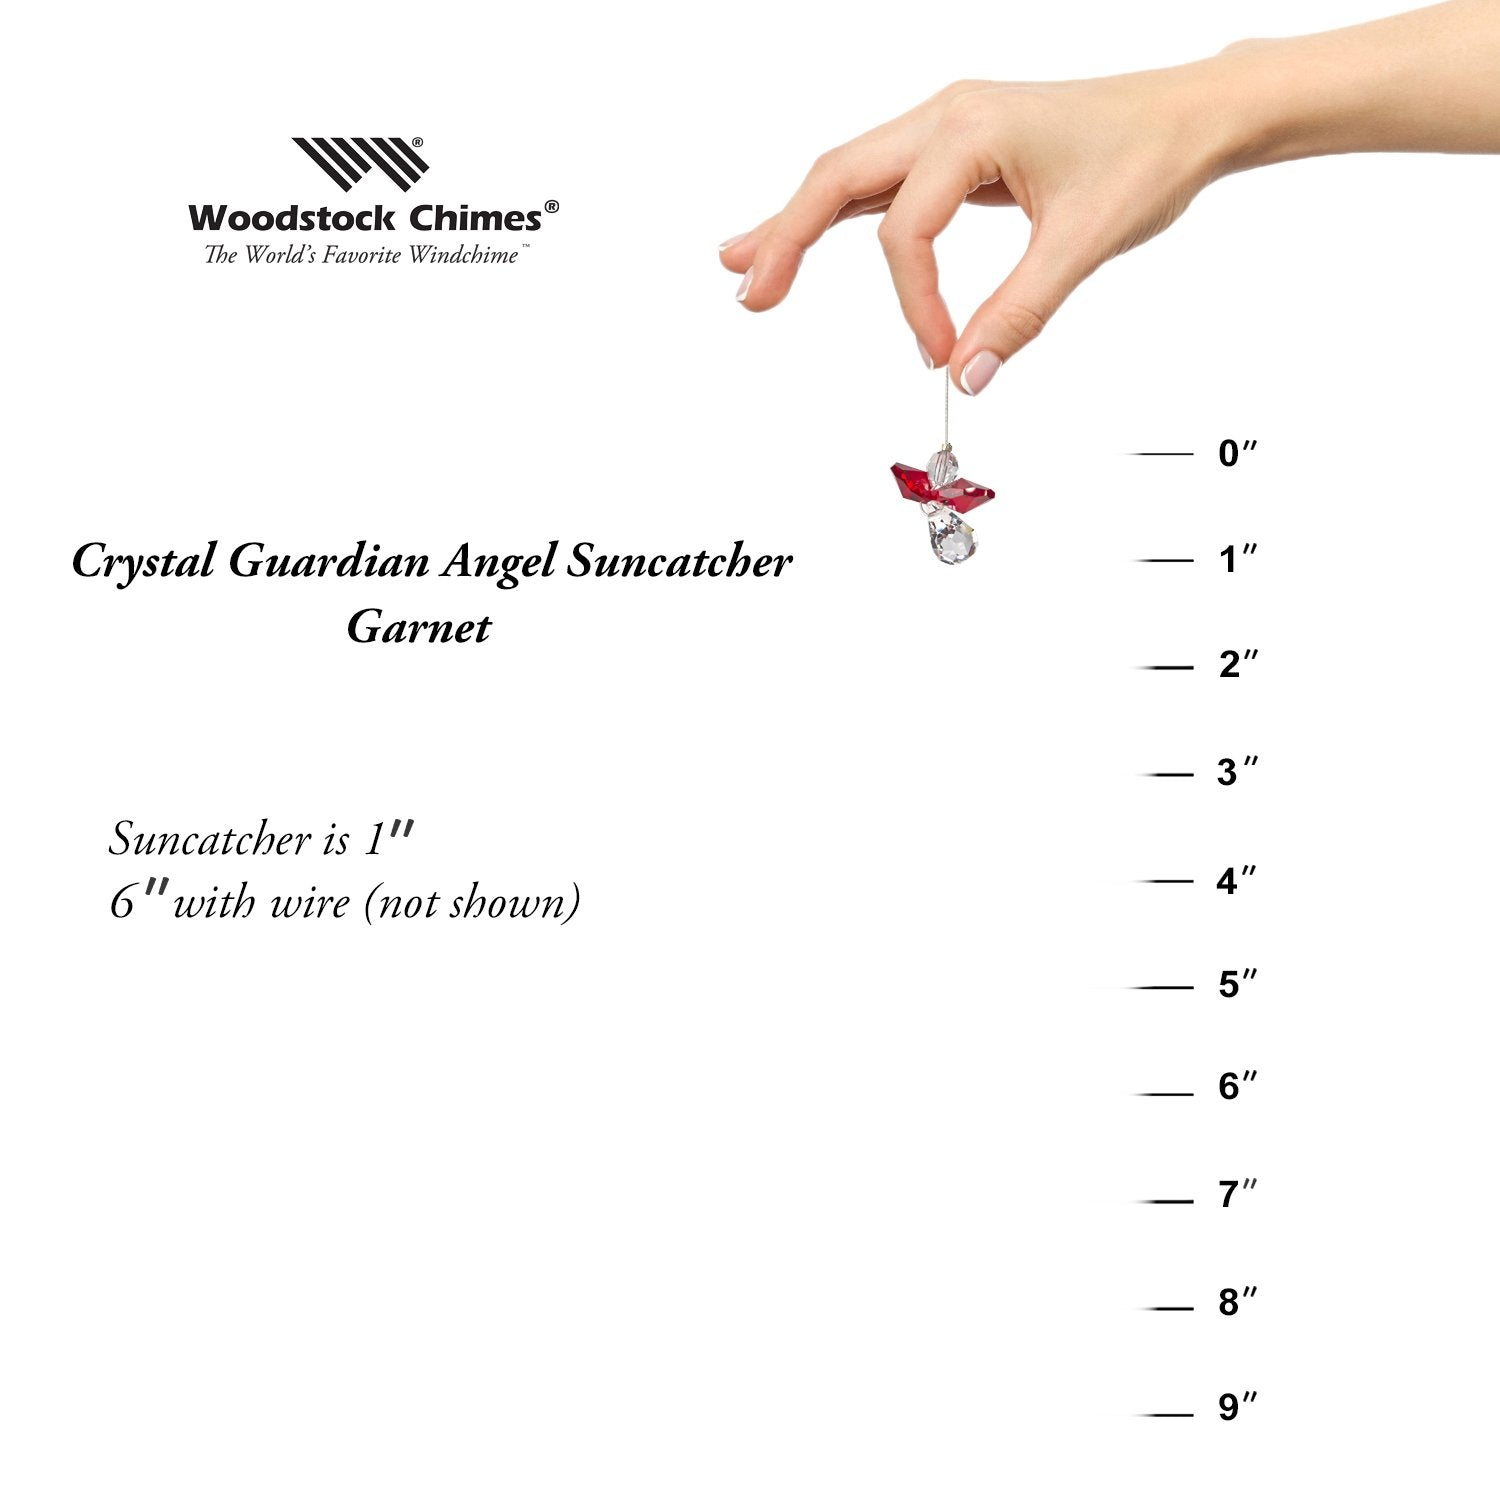 Crystal Guardian Angel Suncatcher - Garnet (January) proportion image